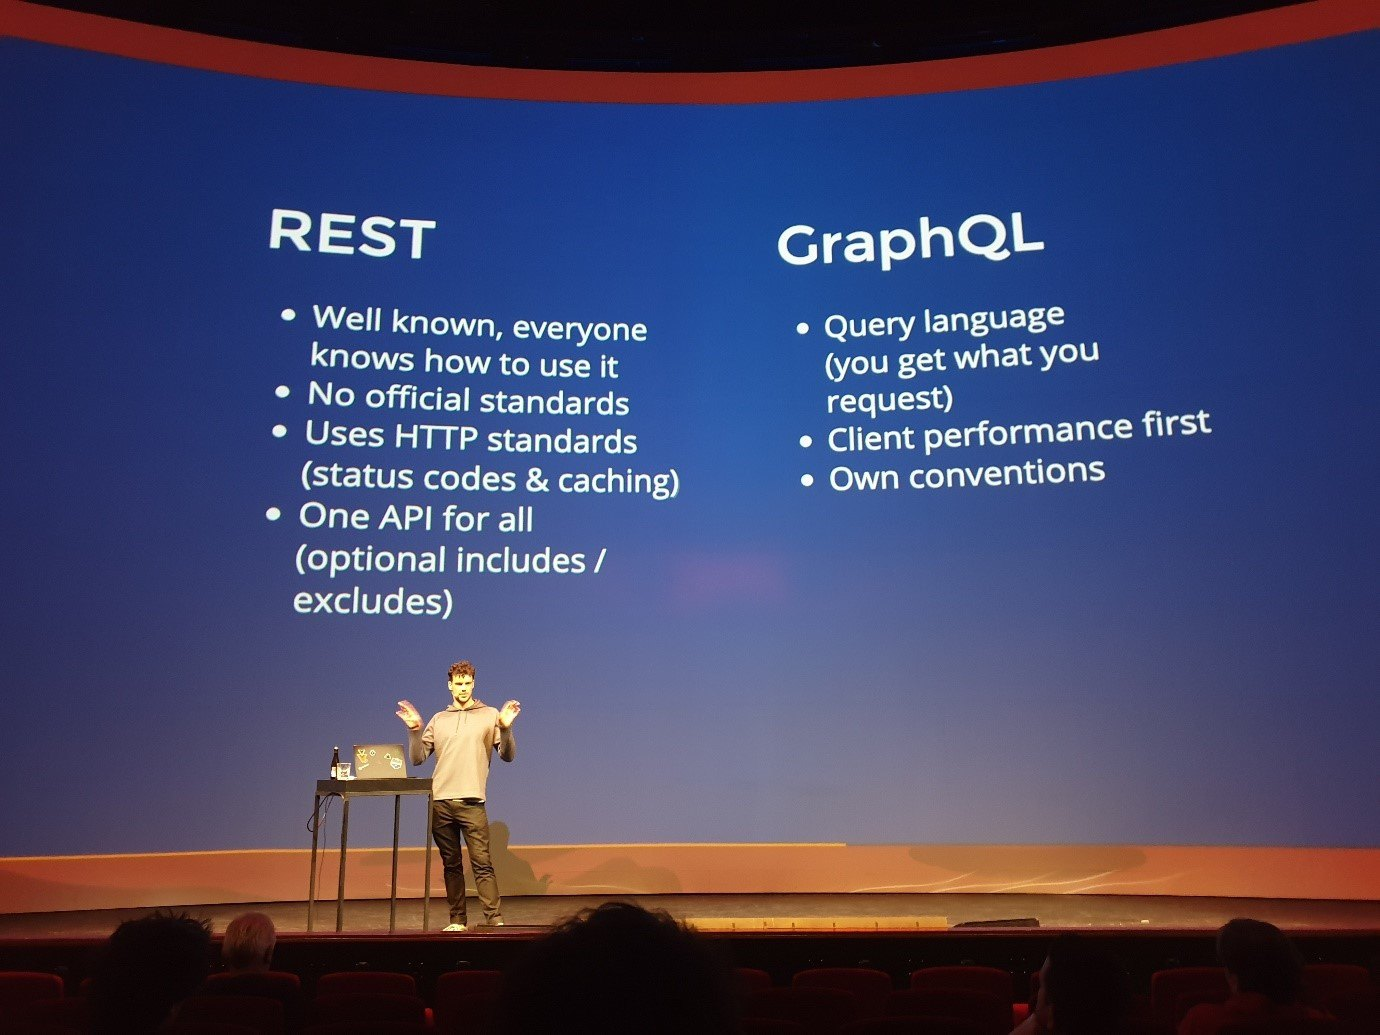 rest-vs-graphql